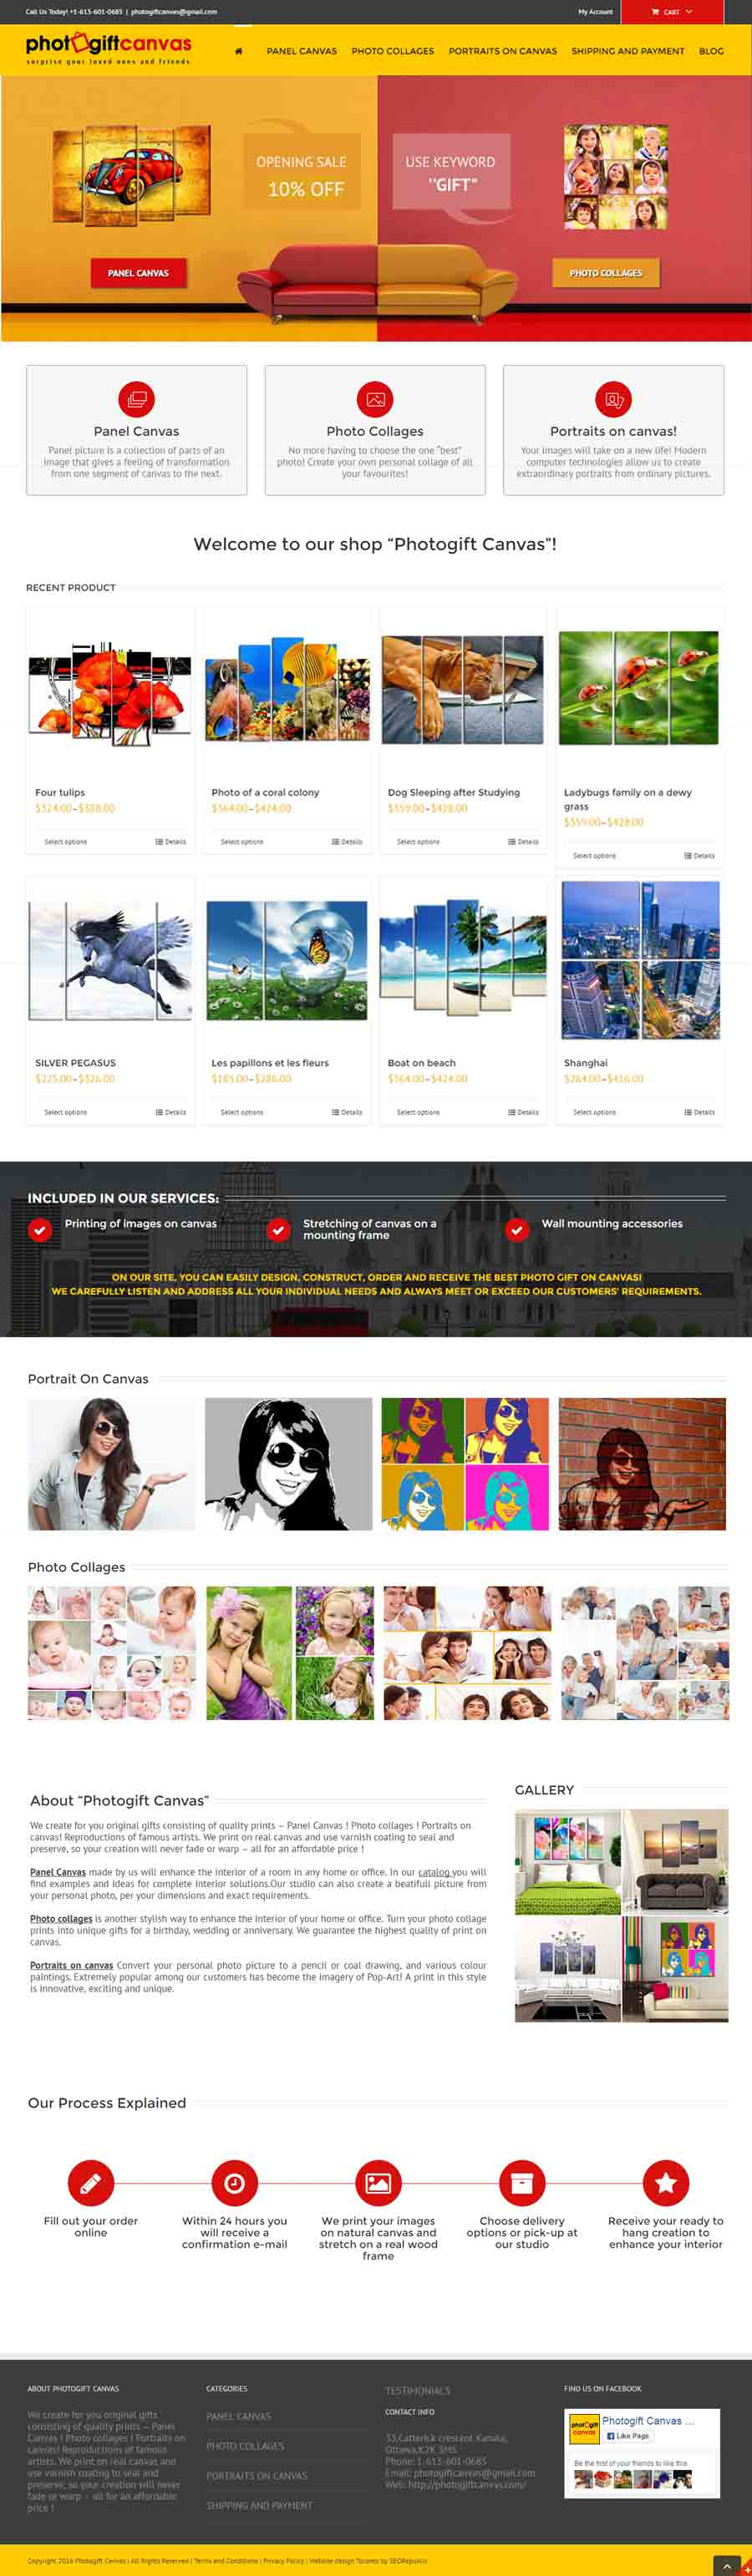 Web-design Toronto Seorepublic Photogift Canvas